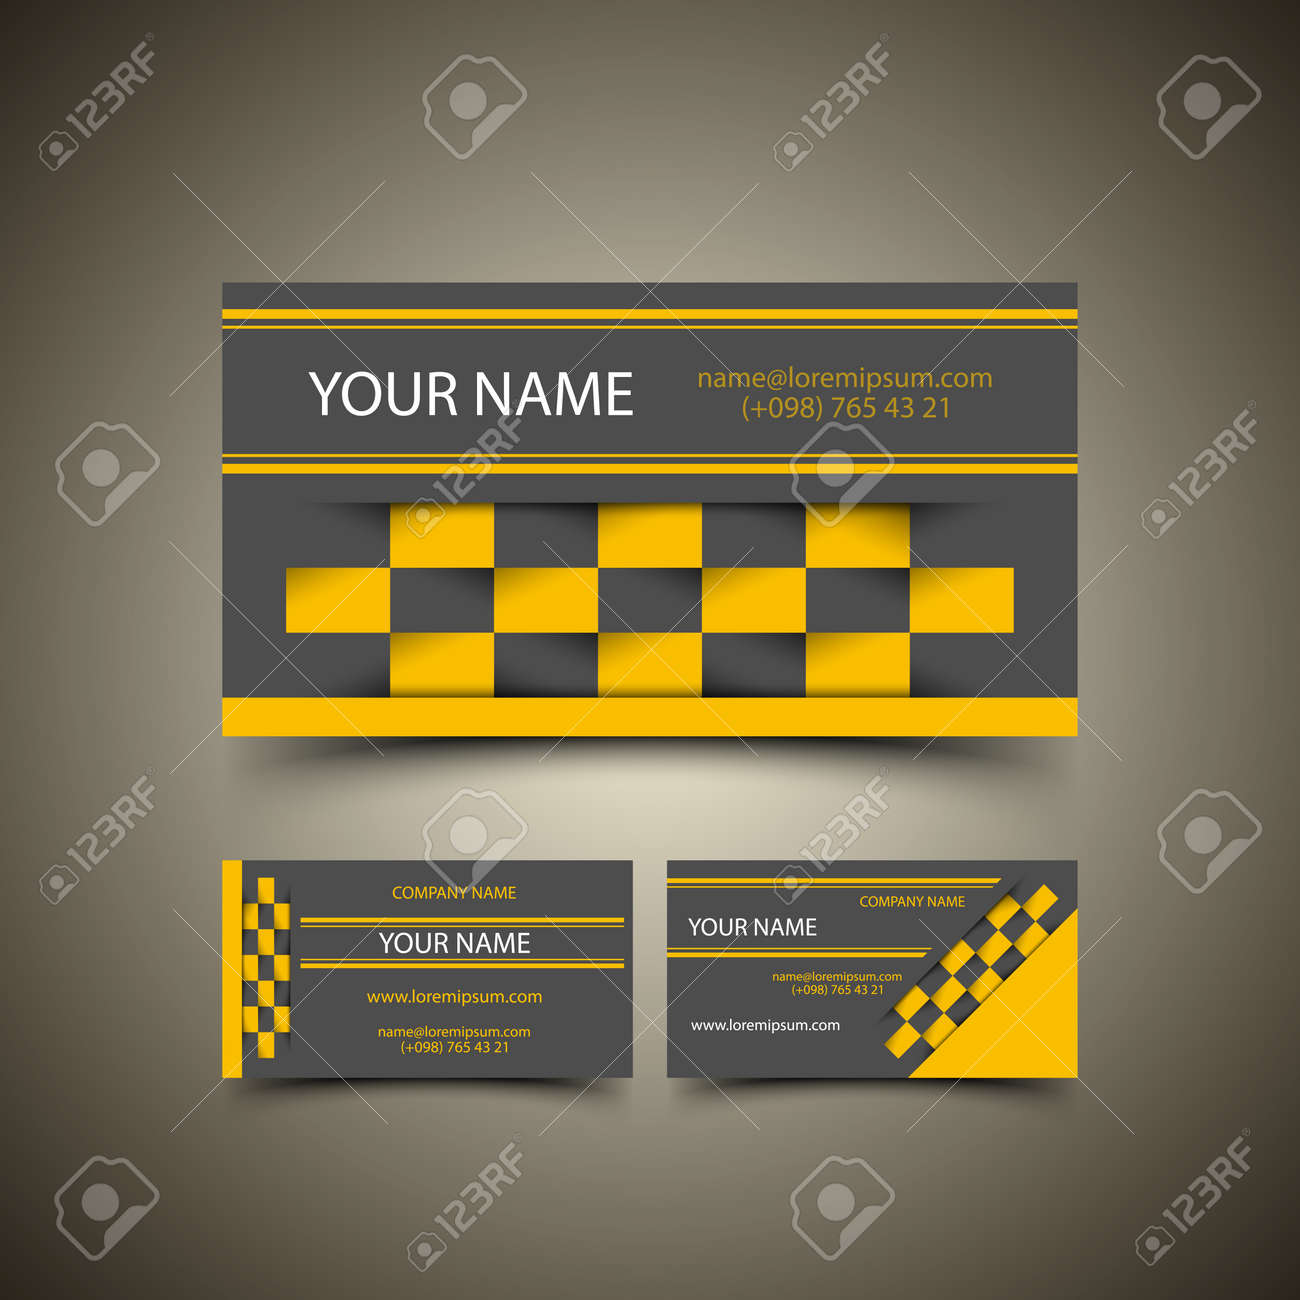 Taxi Business Card Set Royalty Free Cliparts, Vectors, And Stock ...